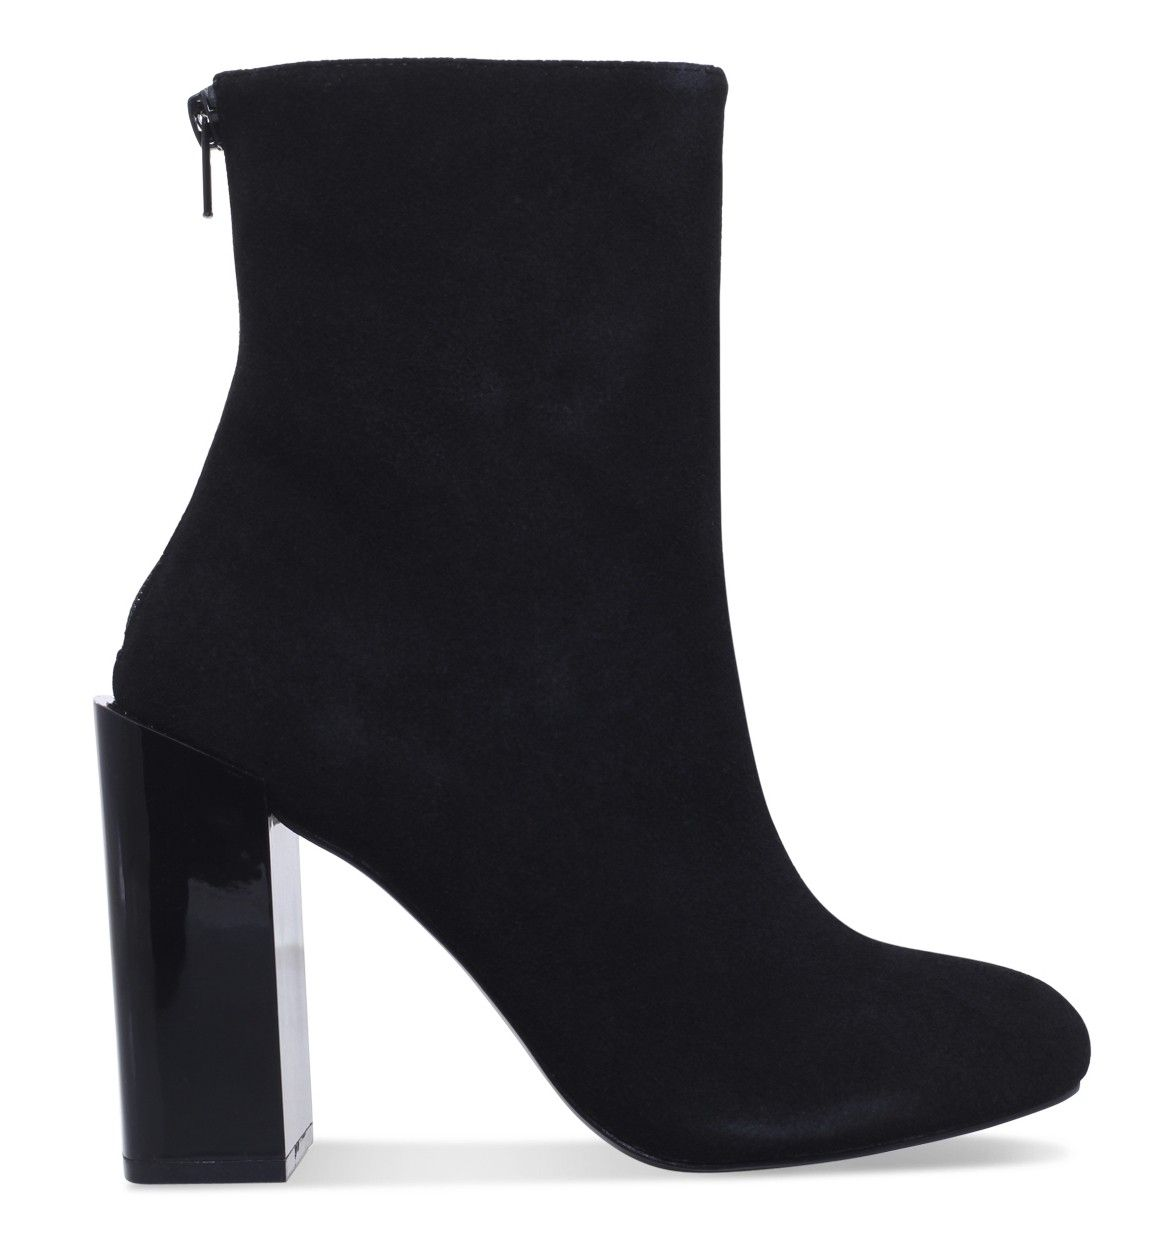 dupe for the Dear Frances Spirit boot